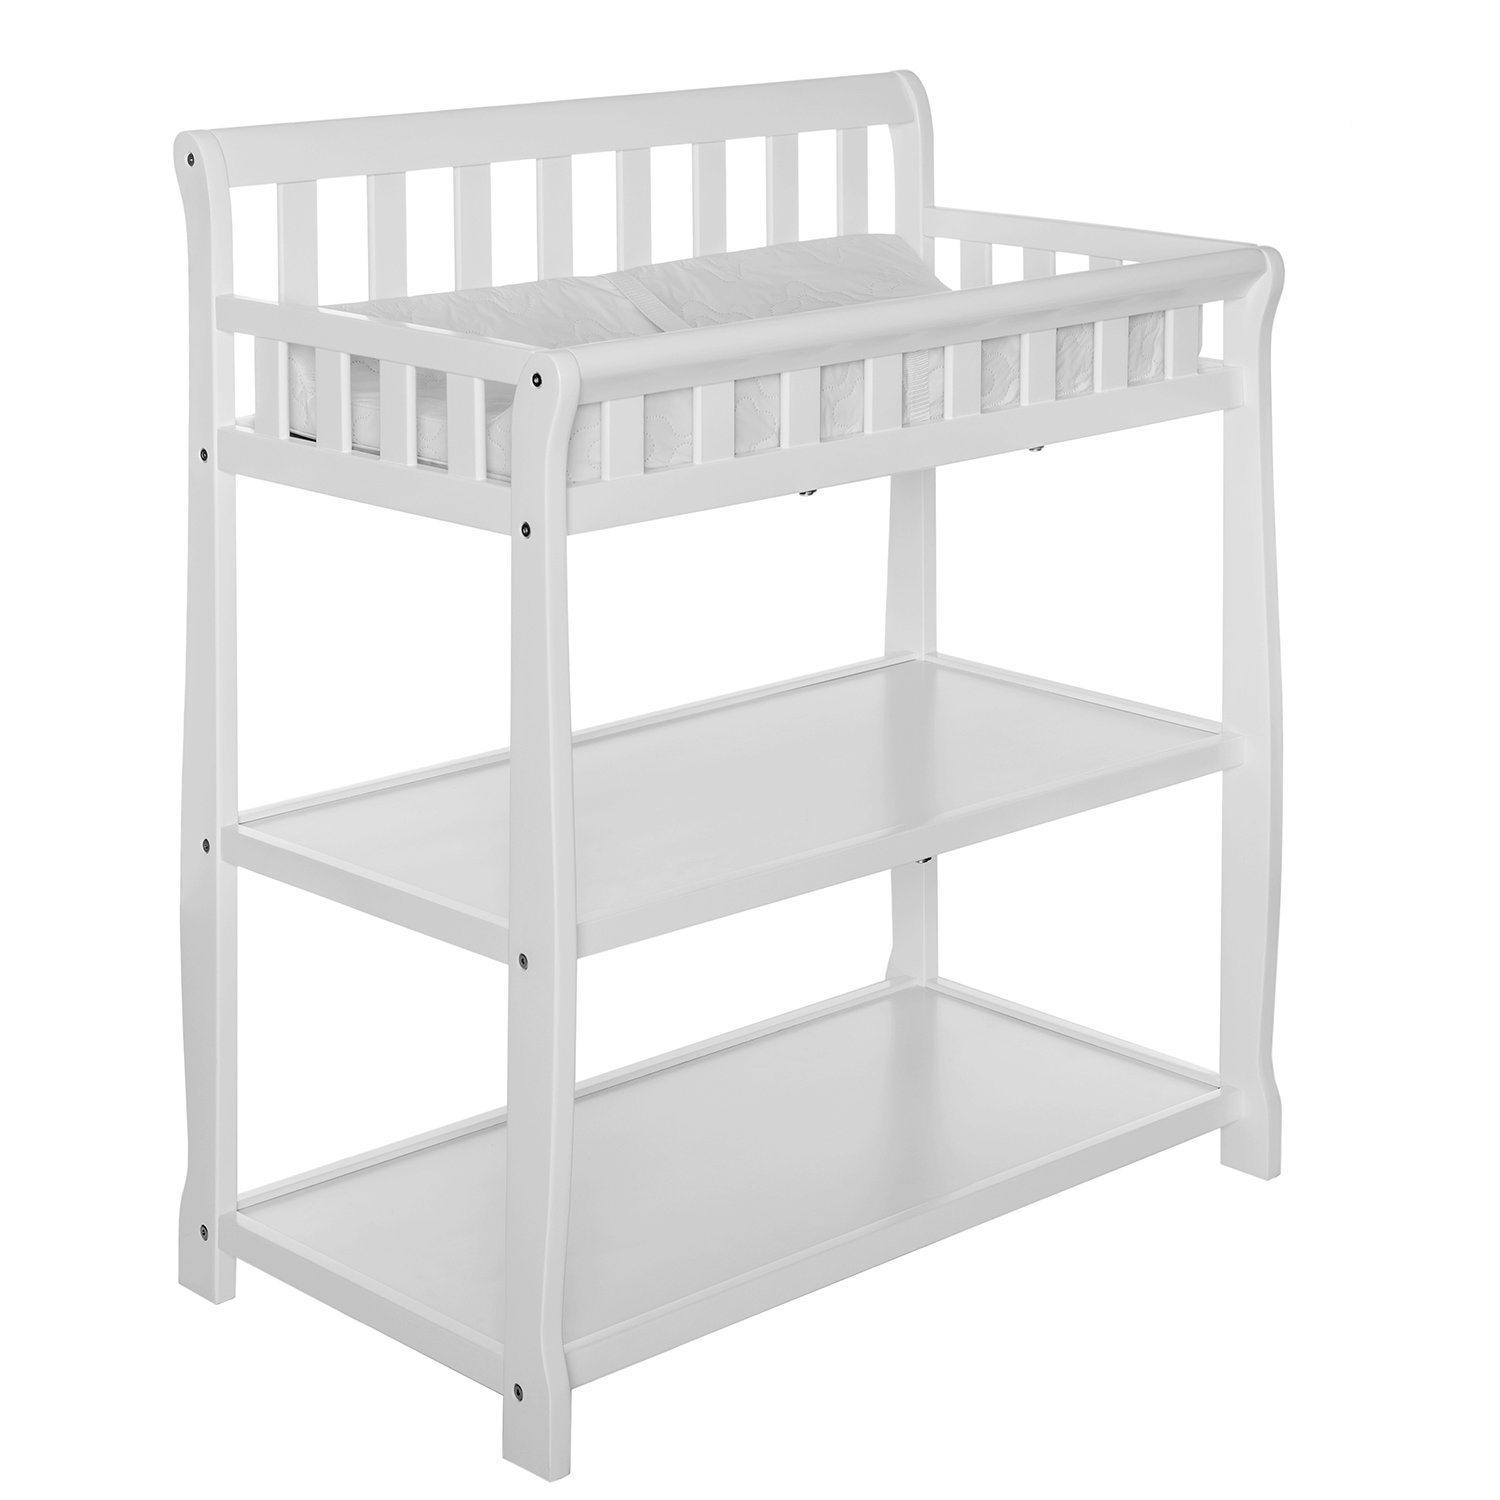 Dream On Me 2-in-1 Ashton Changing Table, Natural 604-N